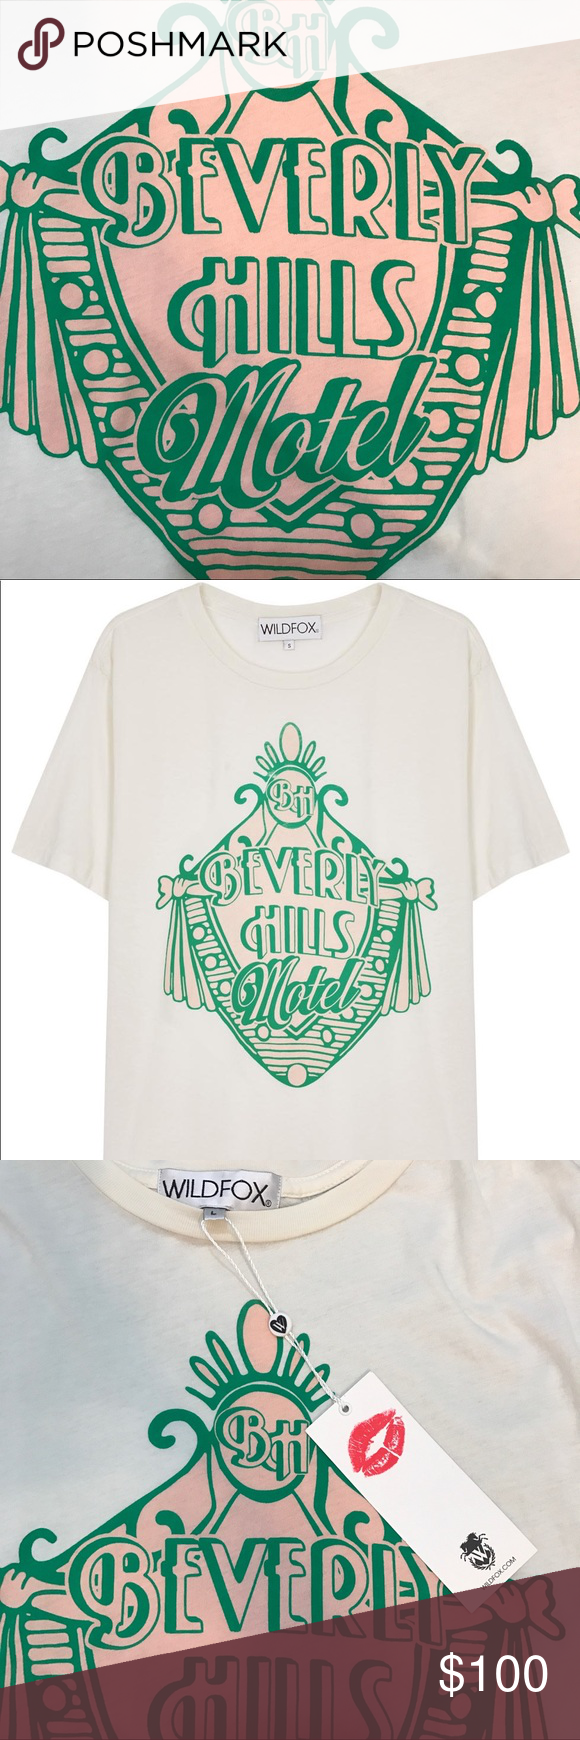 Wildfox Bh Shirt Brand New With Tags Attached Beverly Hills Hotel Tee Rare And